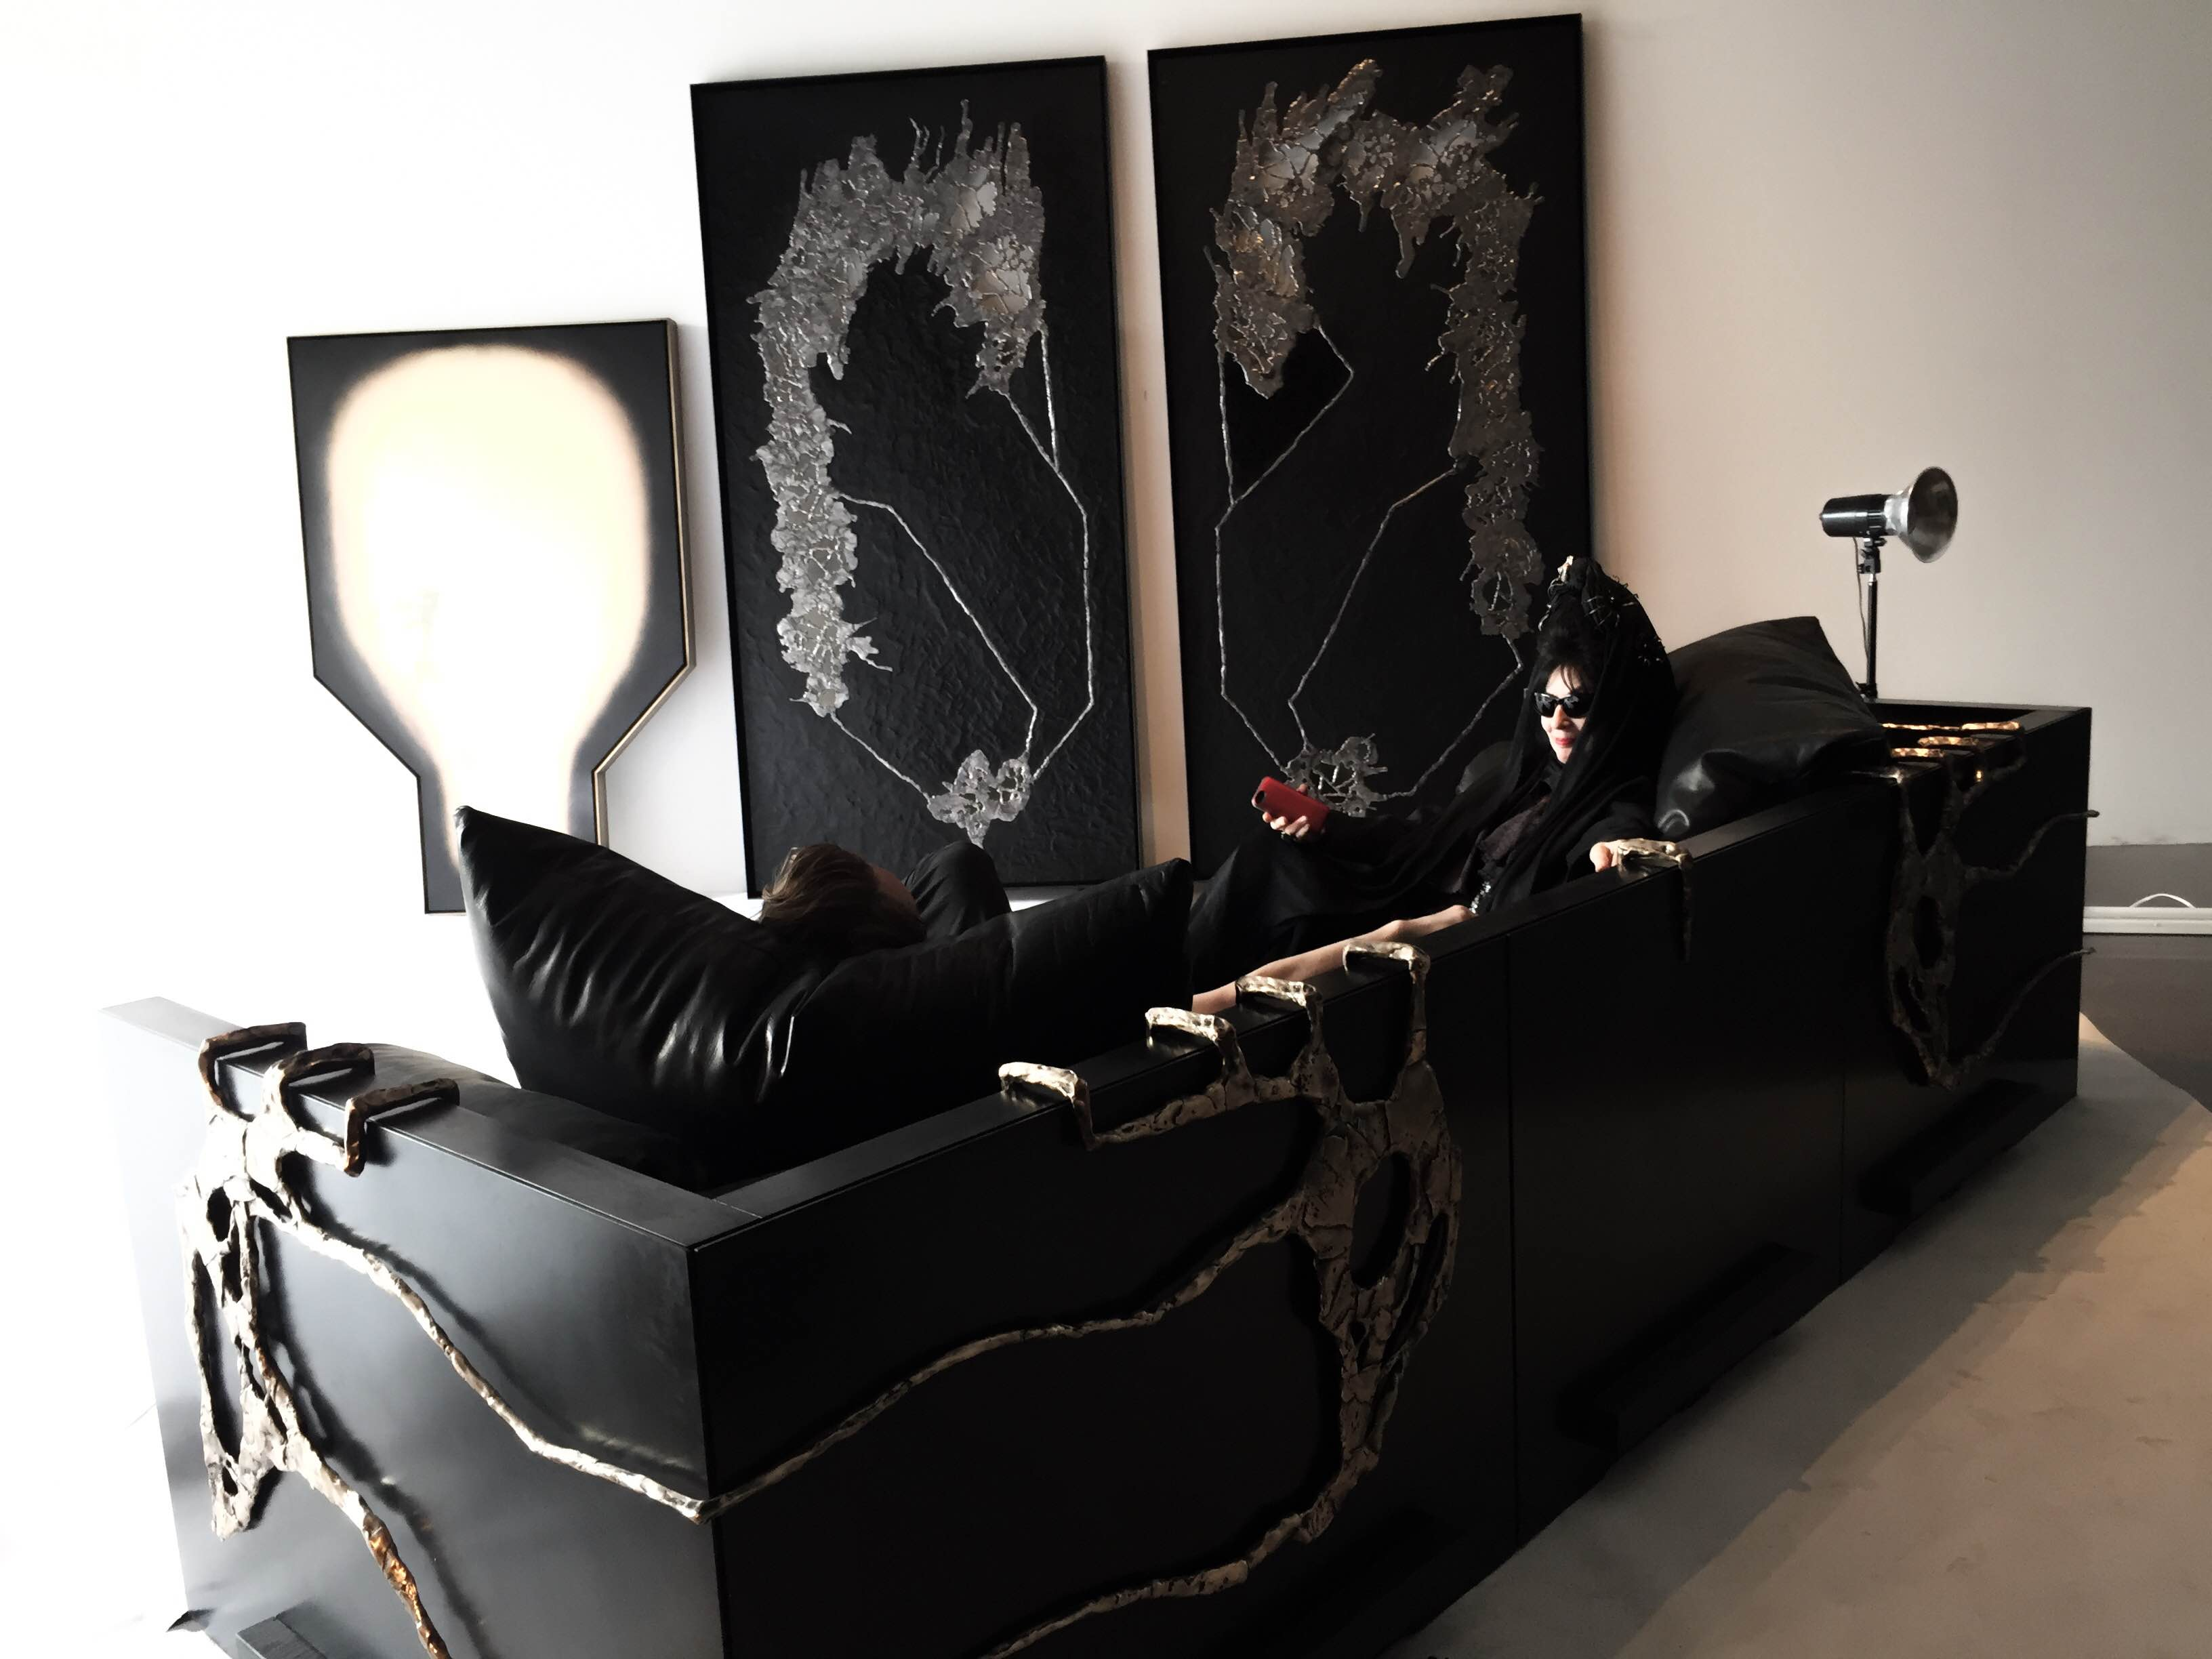 asvof-2015-05-10-the_atelier_of_lukas_machnik_-_this_is_how_i_dream_to_live_-diane_pernet-2079162656.jpg